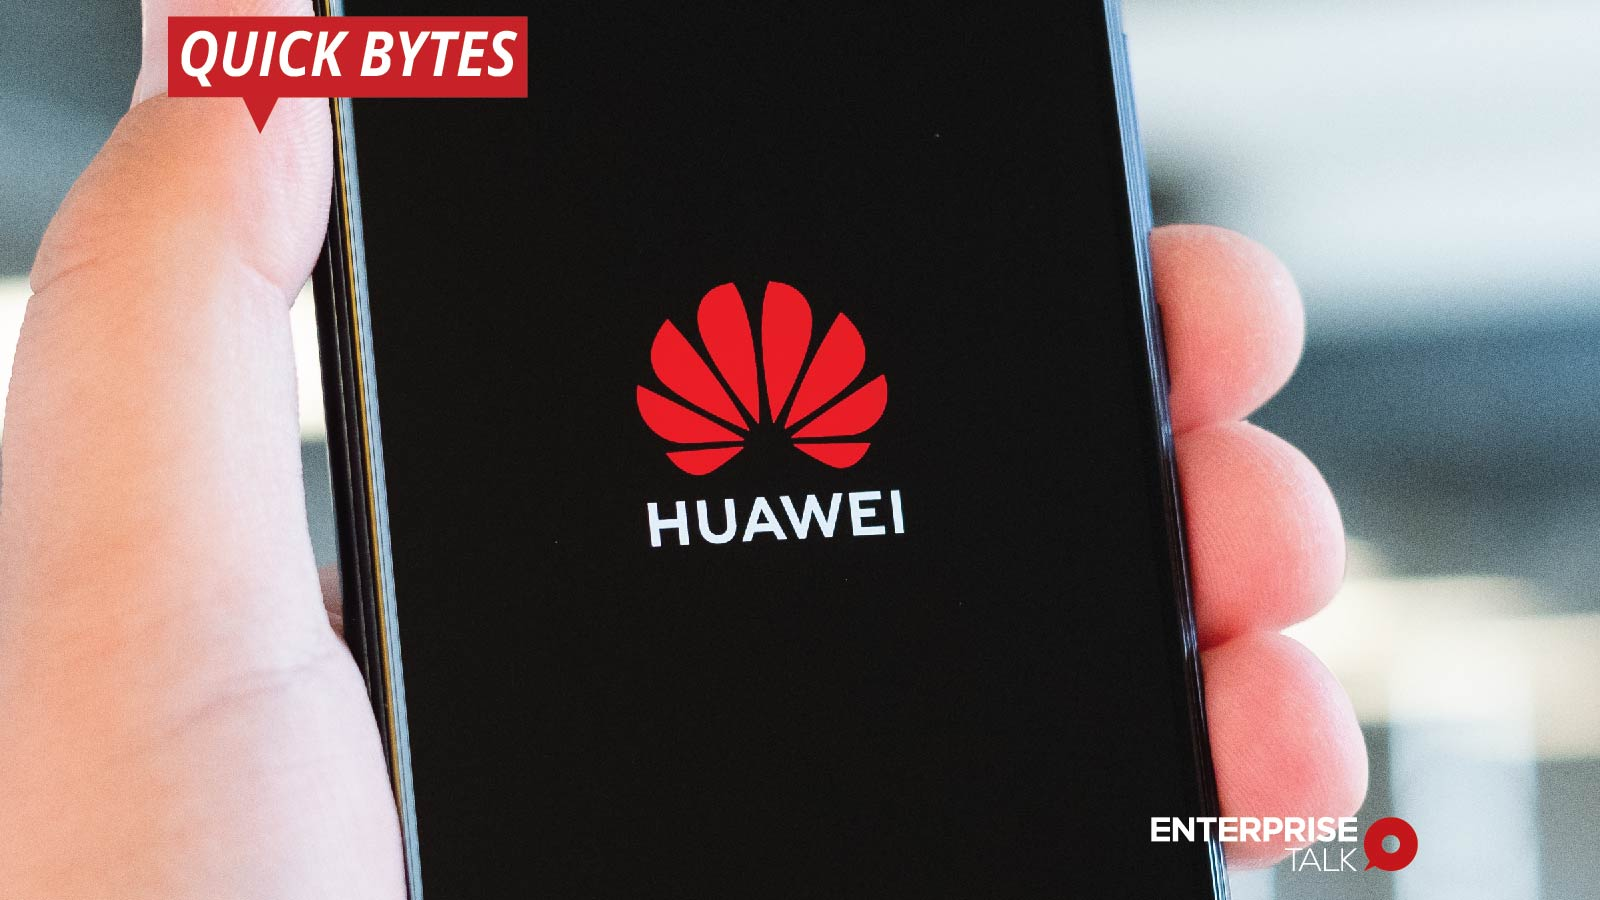 Huawei Suppliers Push to Alter Donald Trump's Last Blow